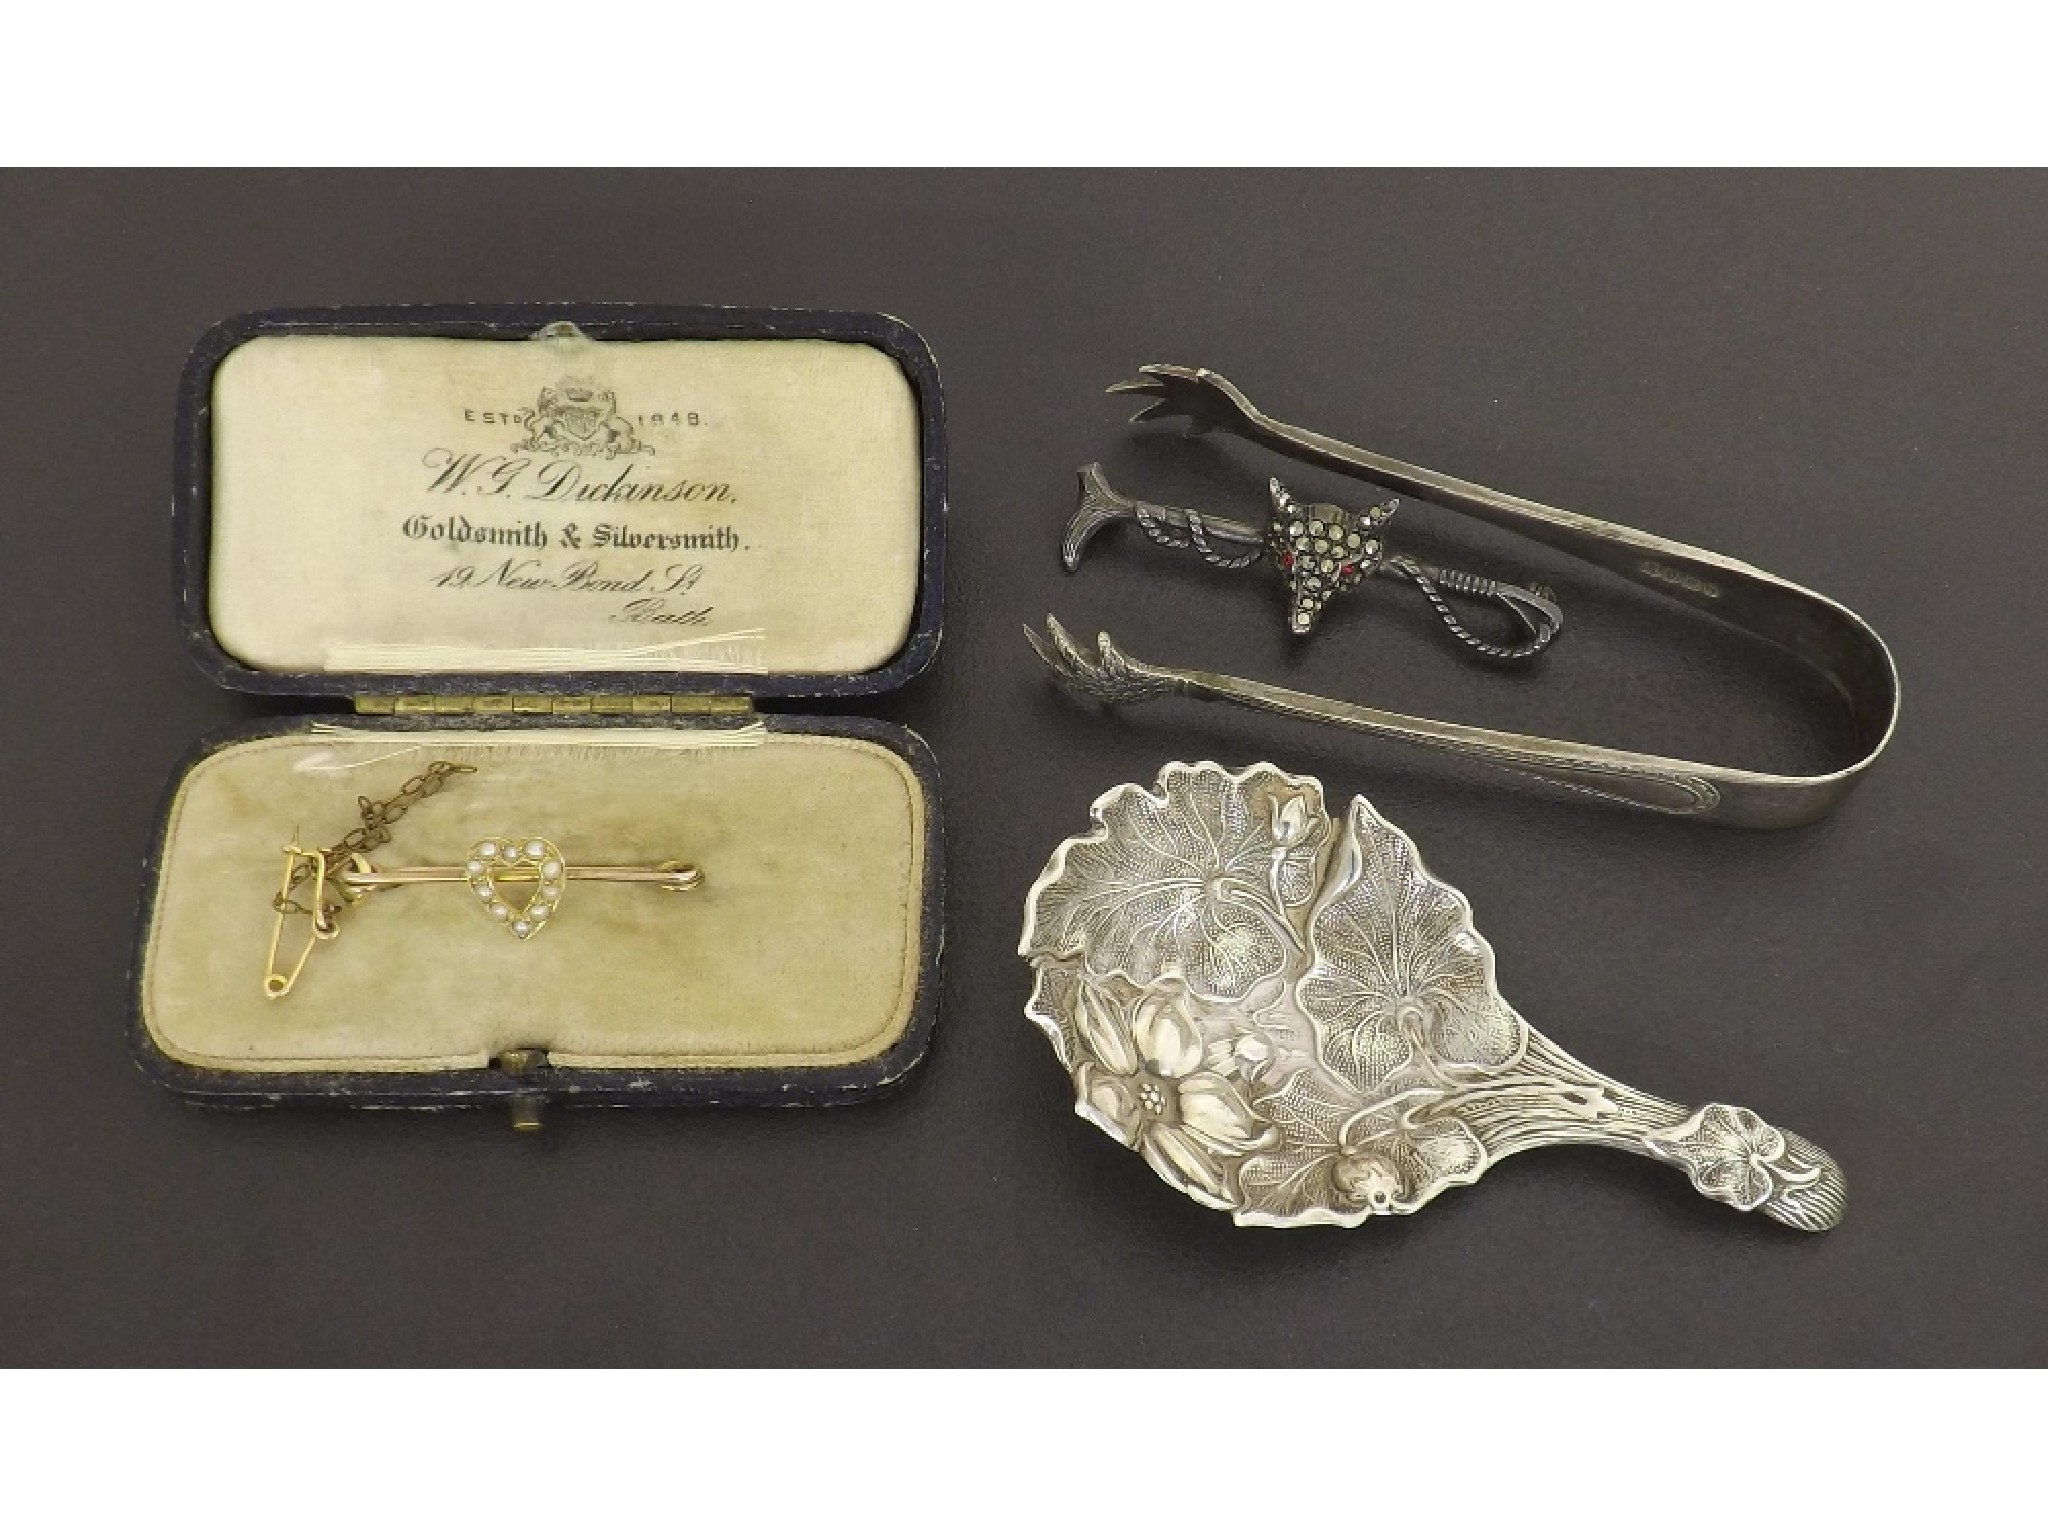 Victorian silver caddy spoon with embossed